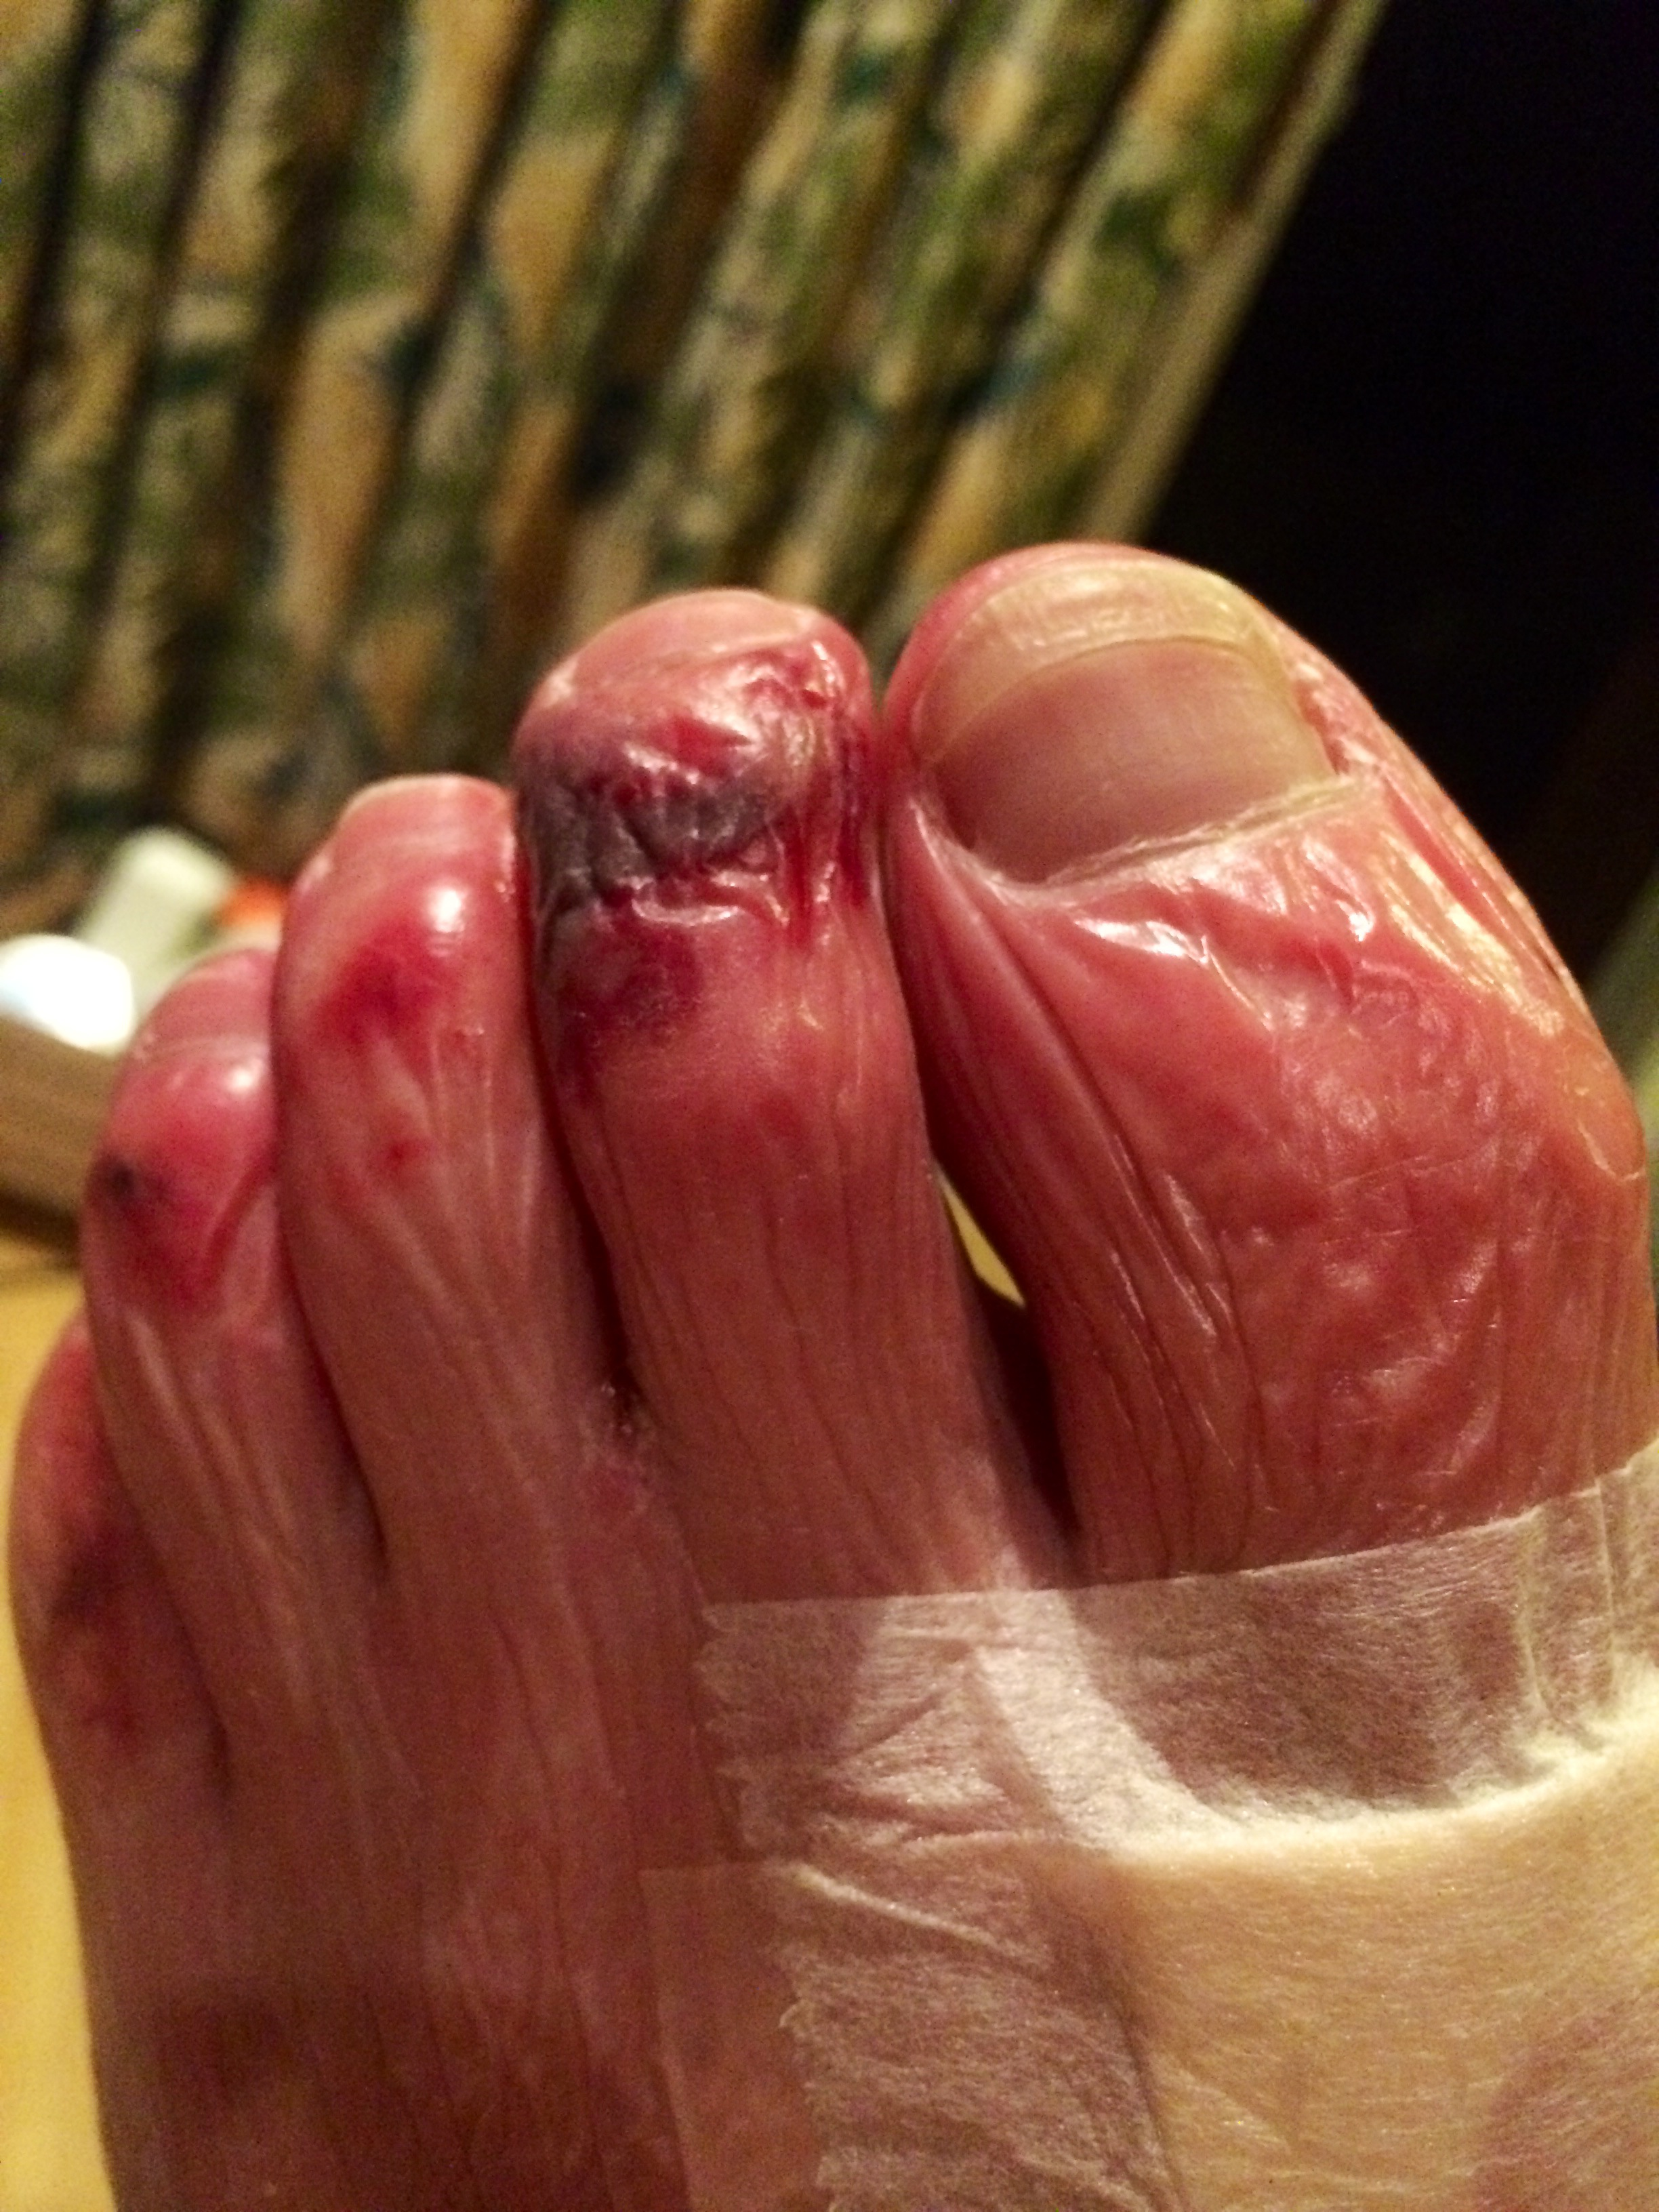 Wrinkled after swelling like a balloon